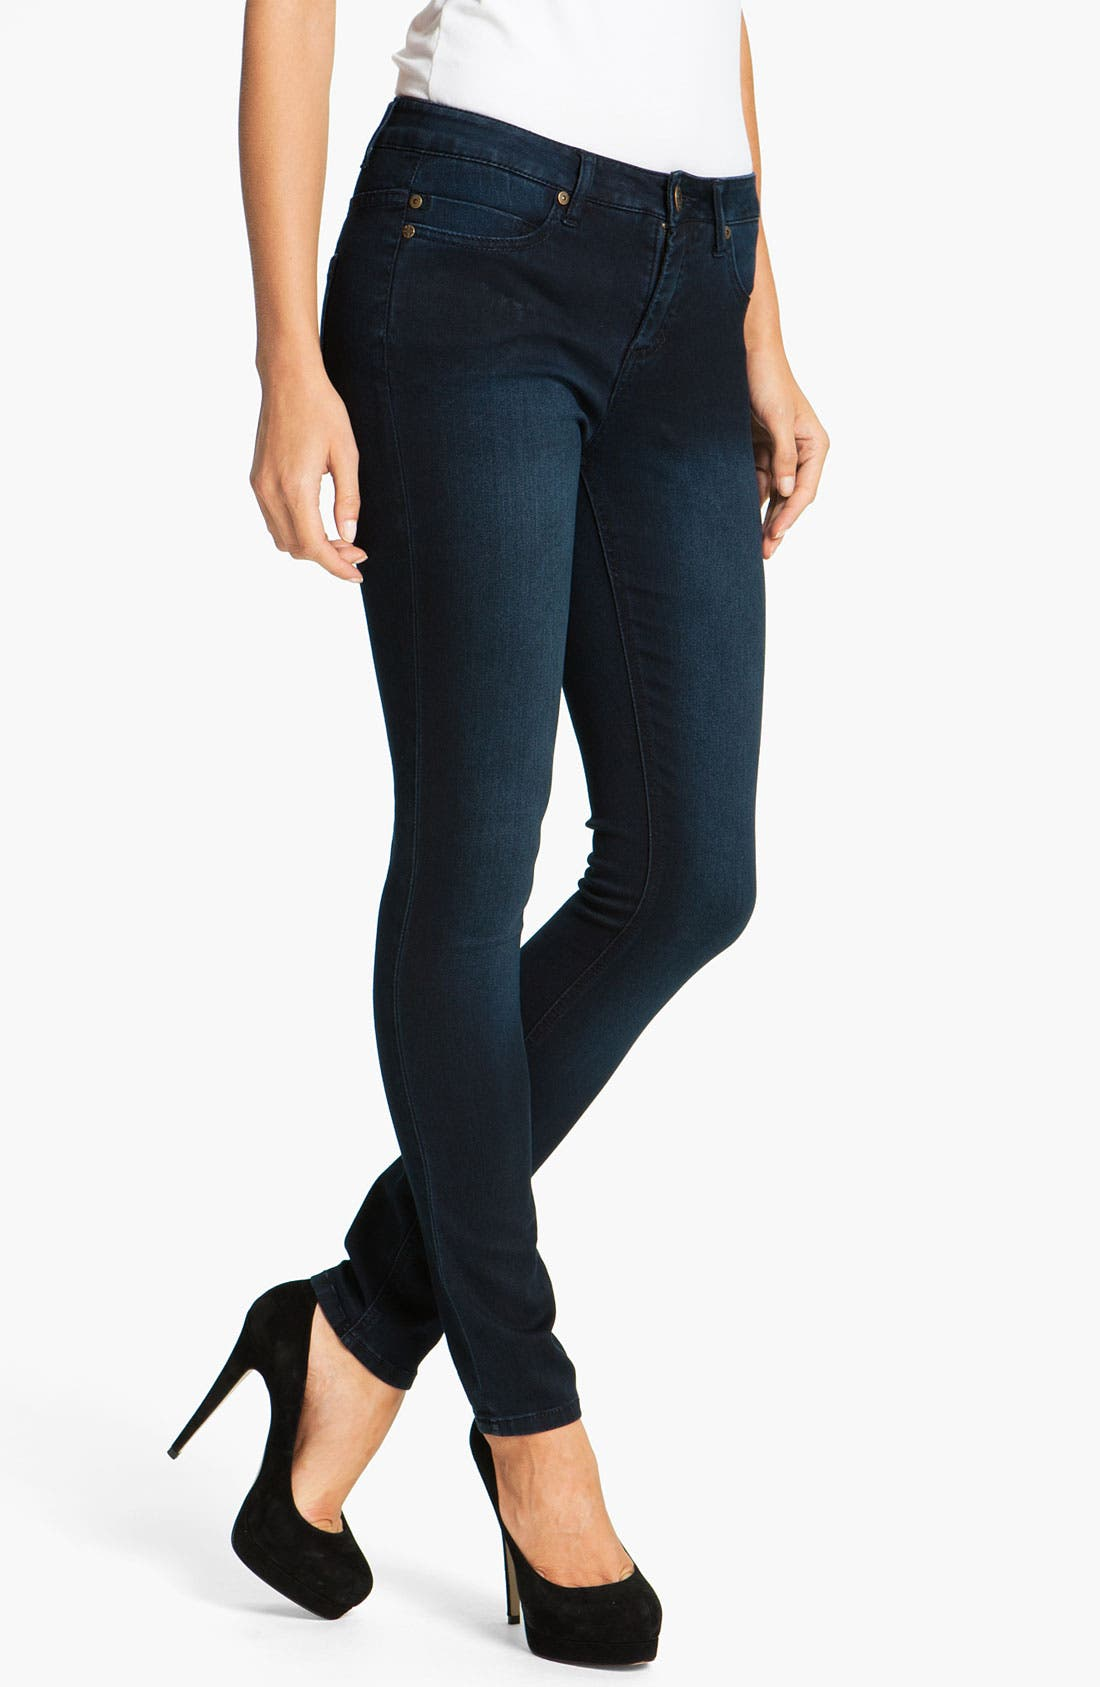 Alternate Image 1 Selected - Liverpool Jeans Company 'Abby' Skinny Supersoft Stretch Jeans (Regular & Petite)